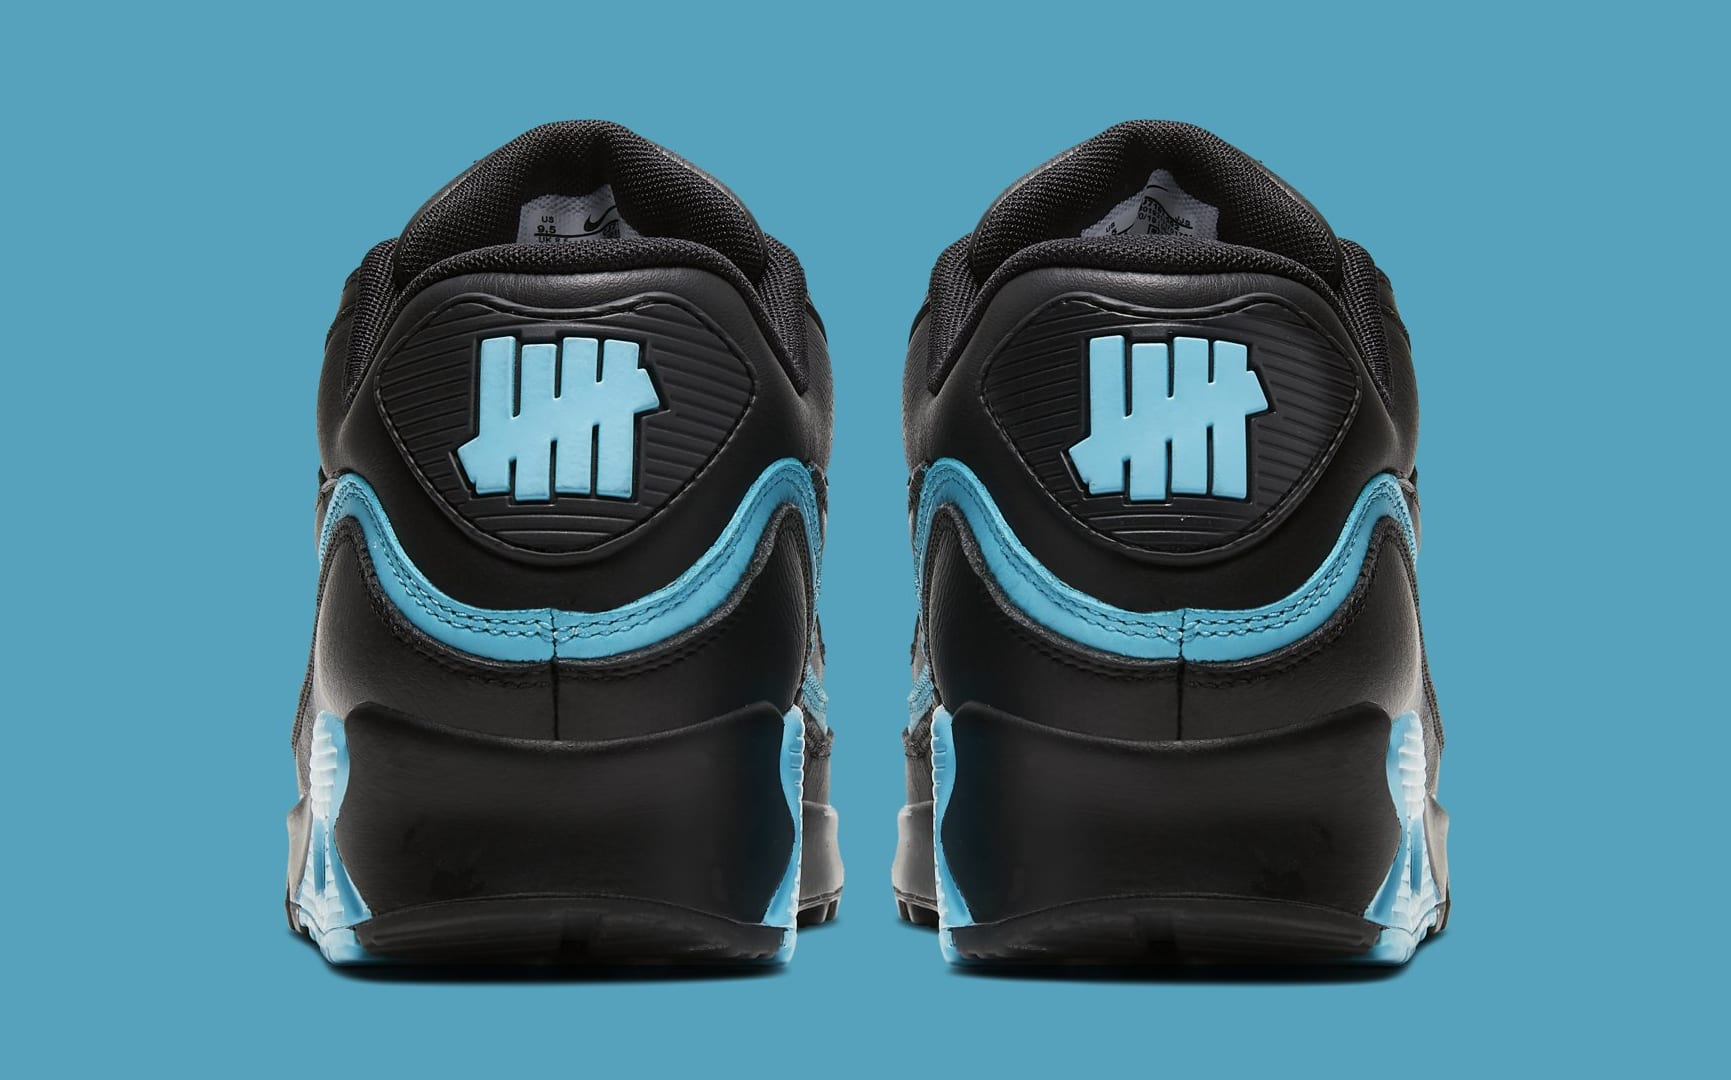 undefeated-nike-air-max-90-black-blue-fury-cj7197-002-heel